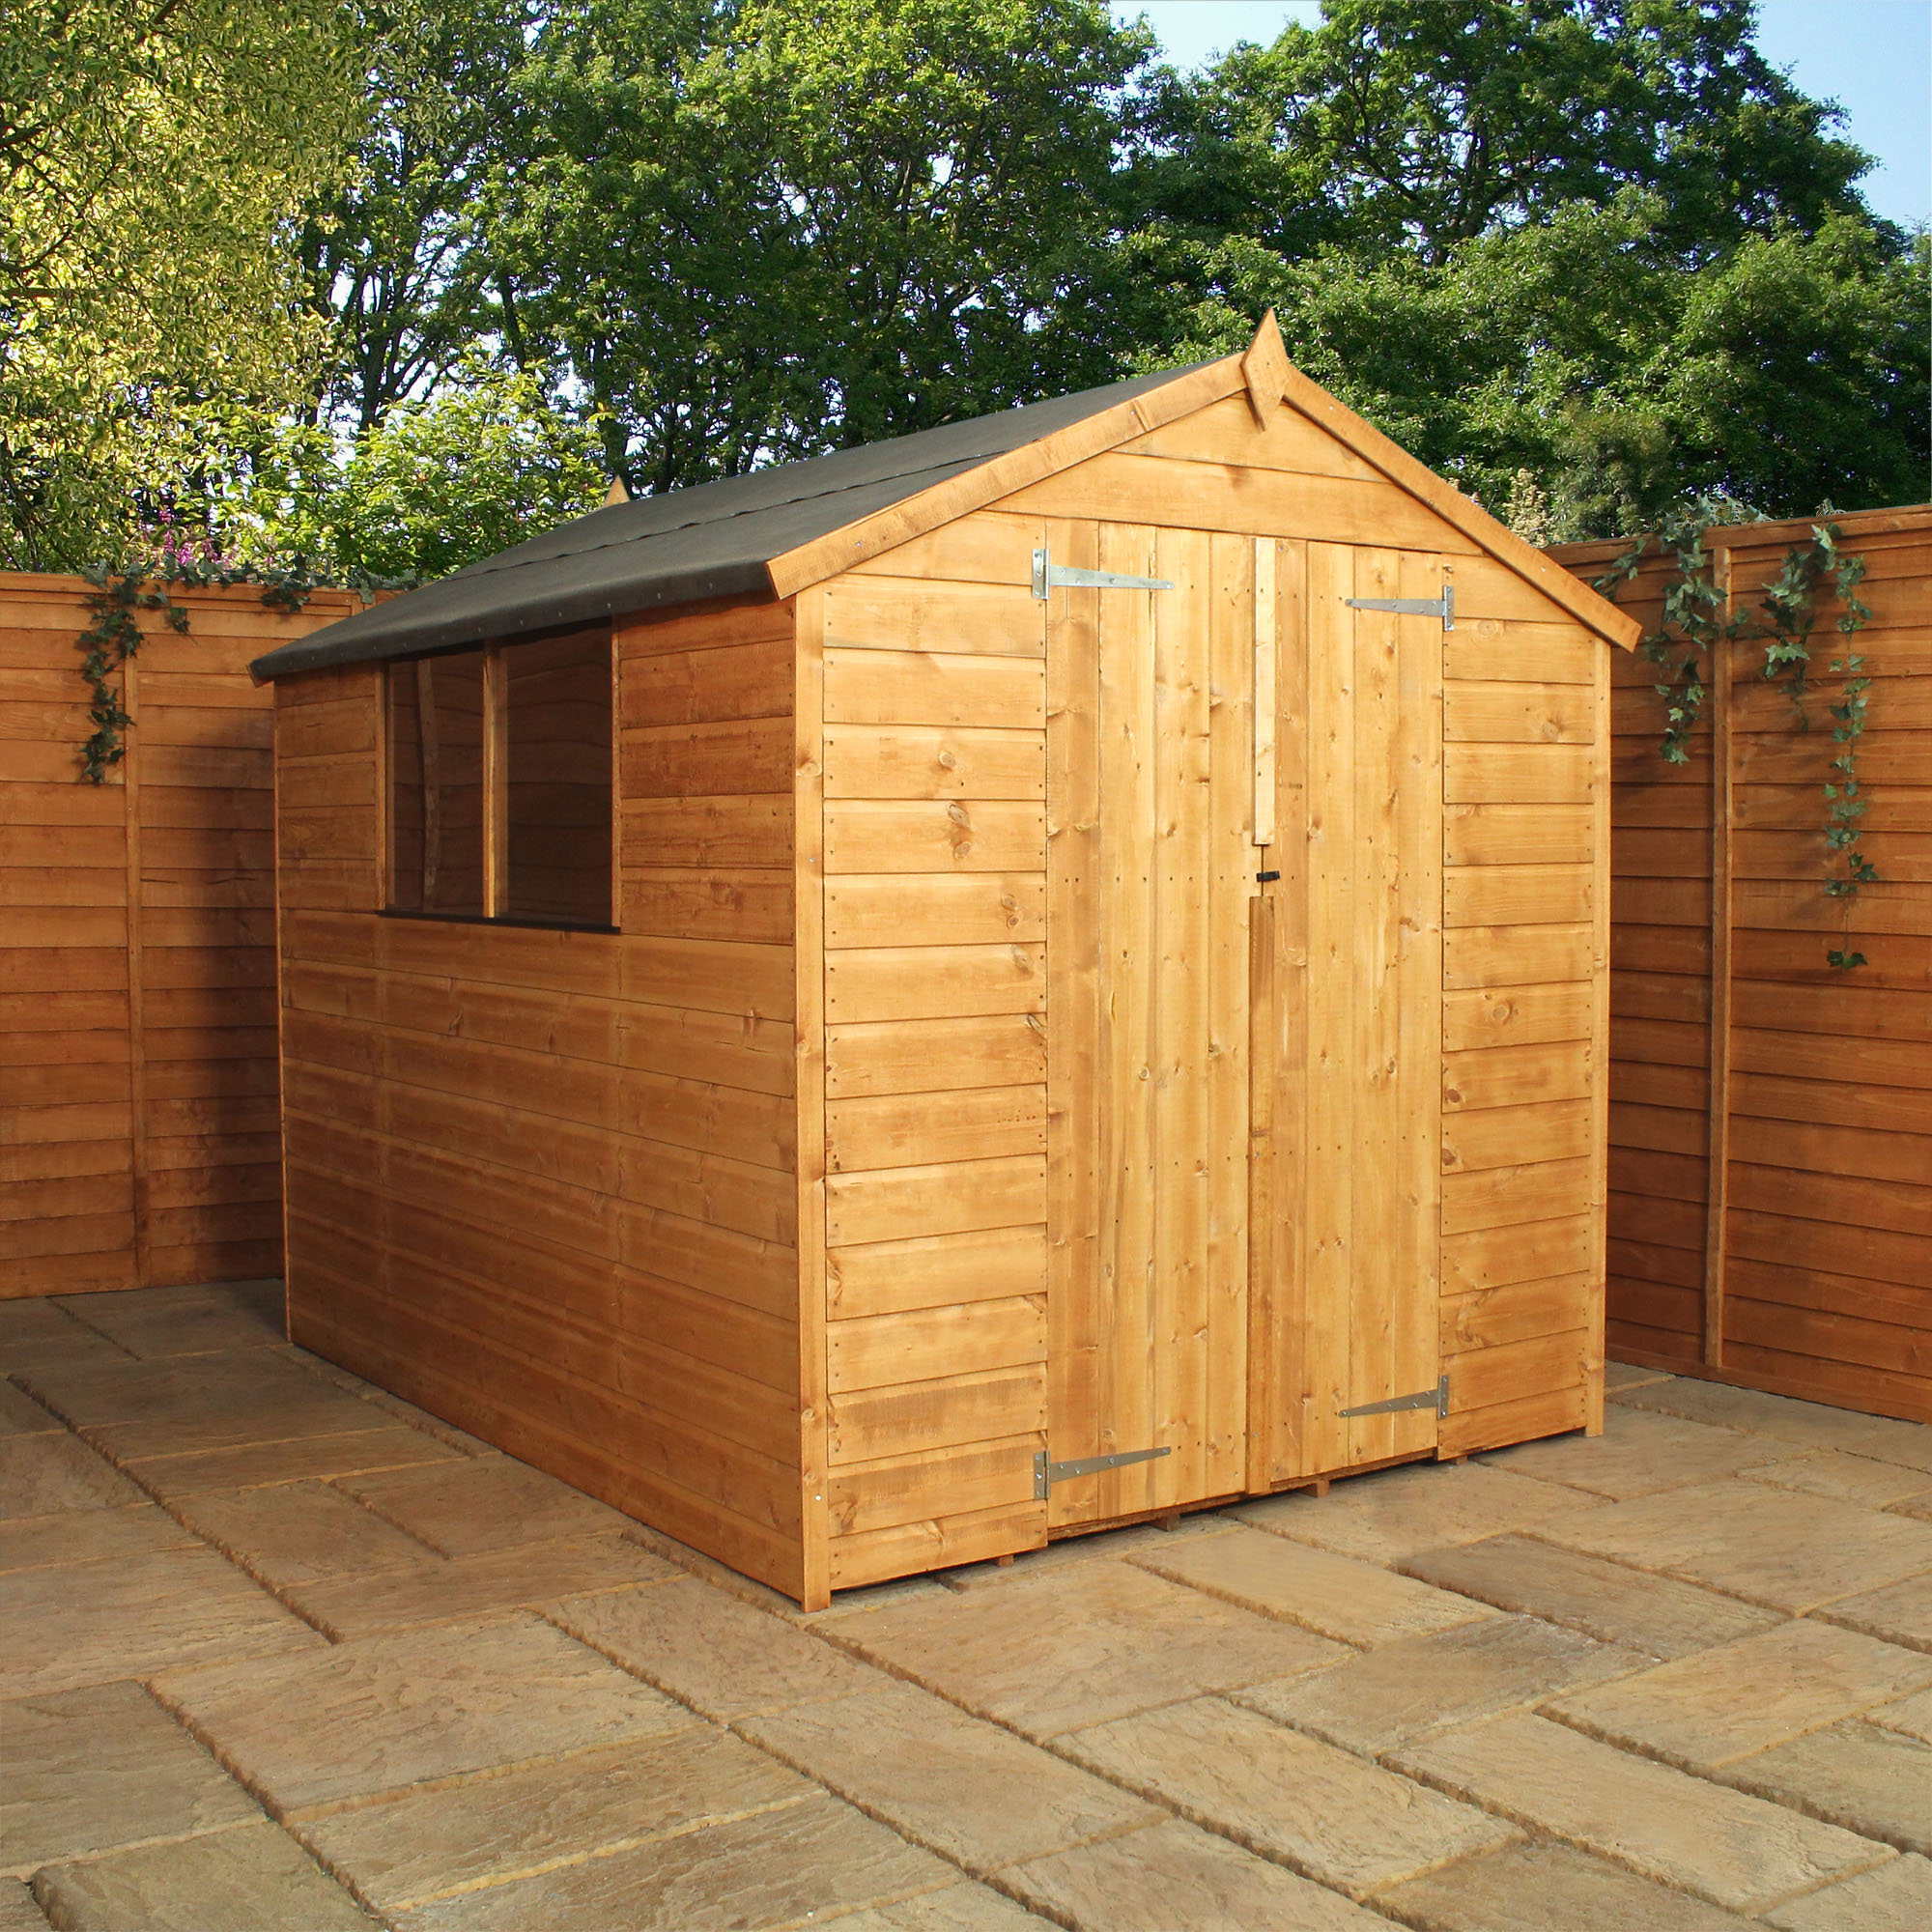 Shedswarehouse Com Oxford 8ft X 8ft 2 25m X 2 25m